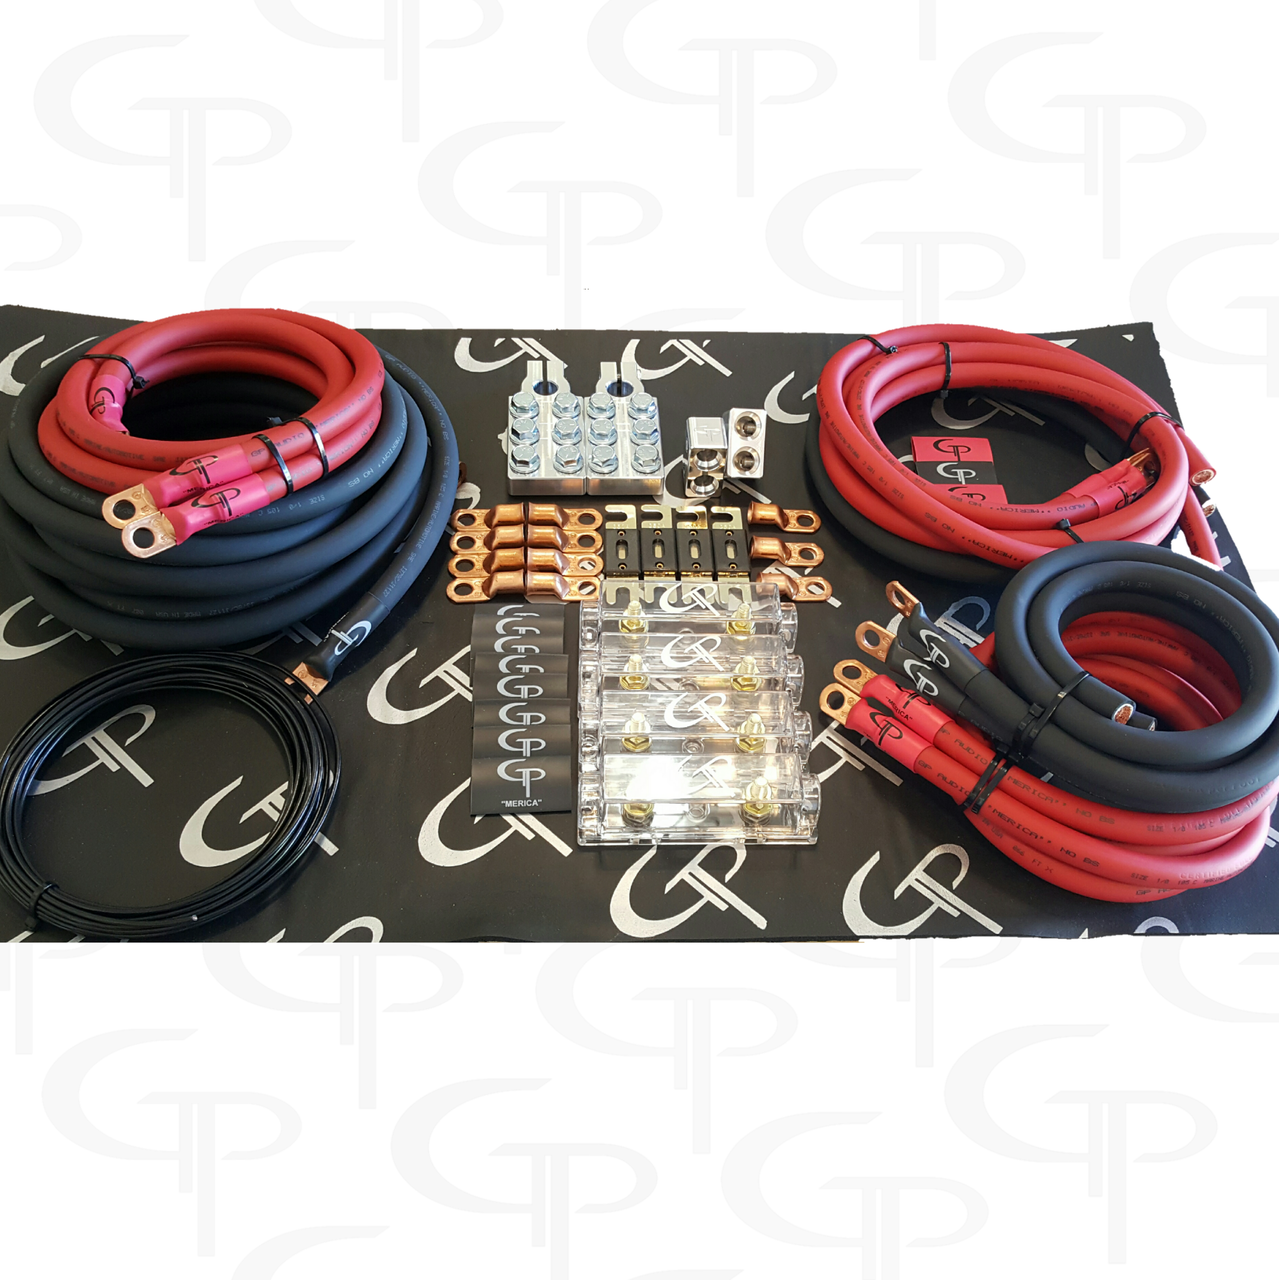 the complete advanced: 2/0 awg stage 2 wiring kit - gp car audio  gp car audio